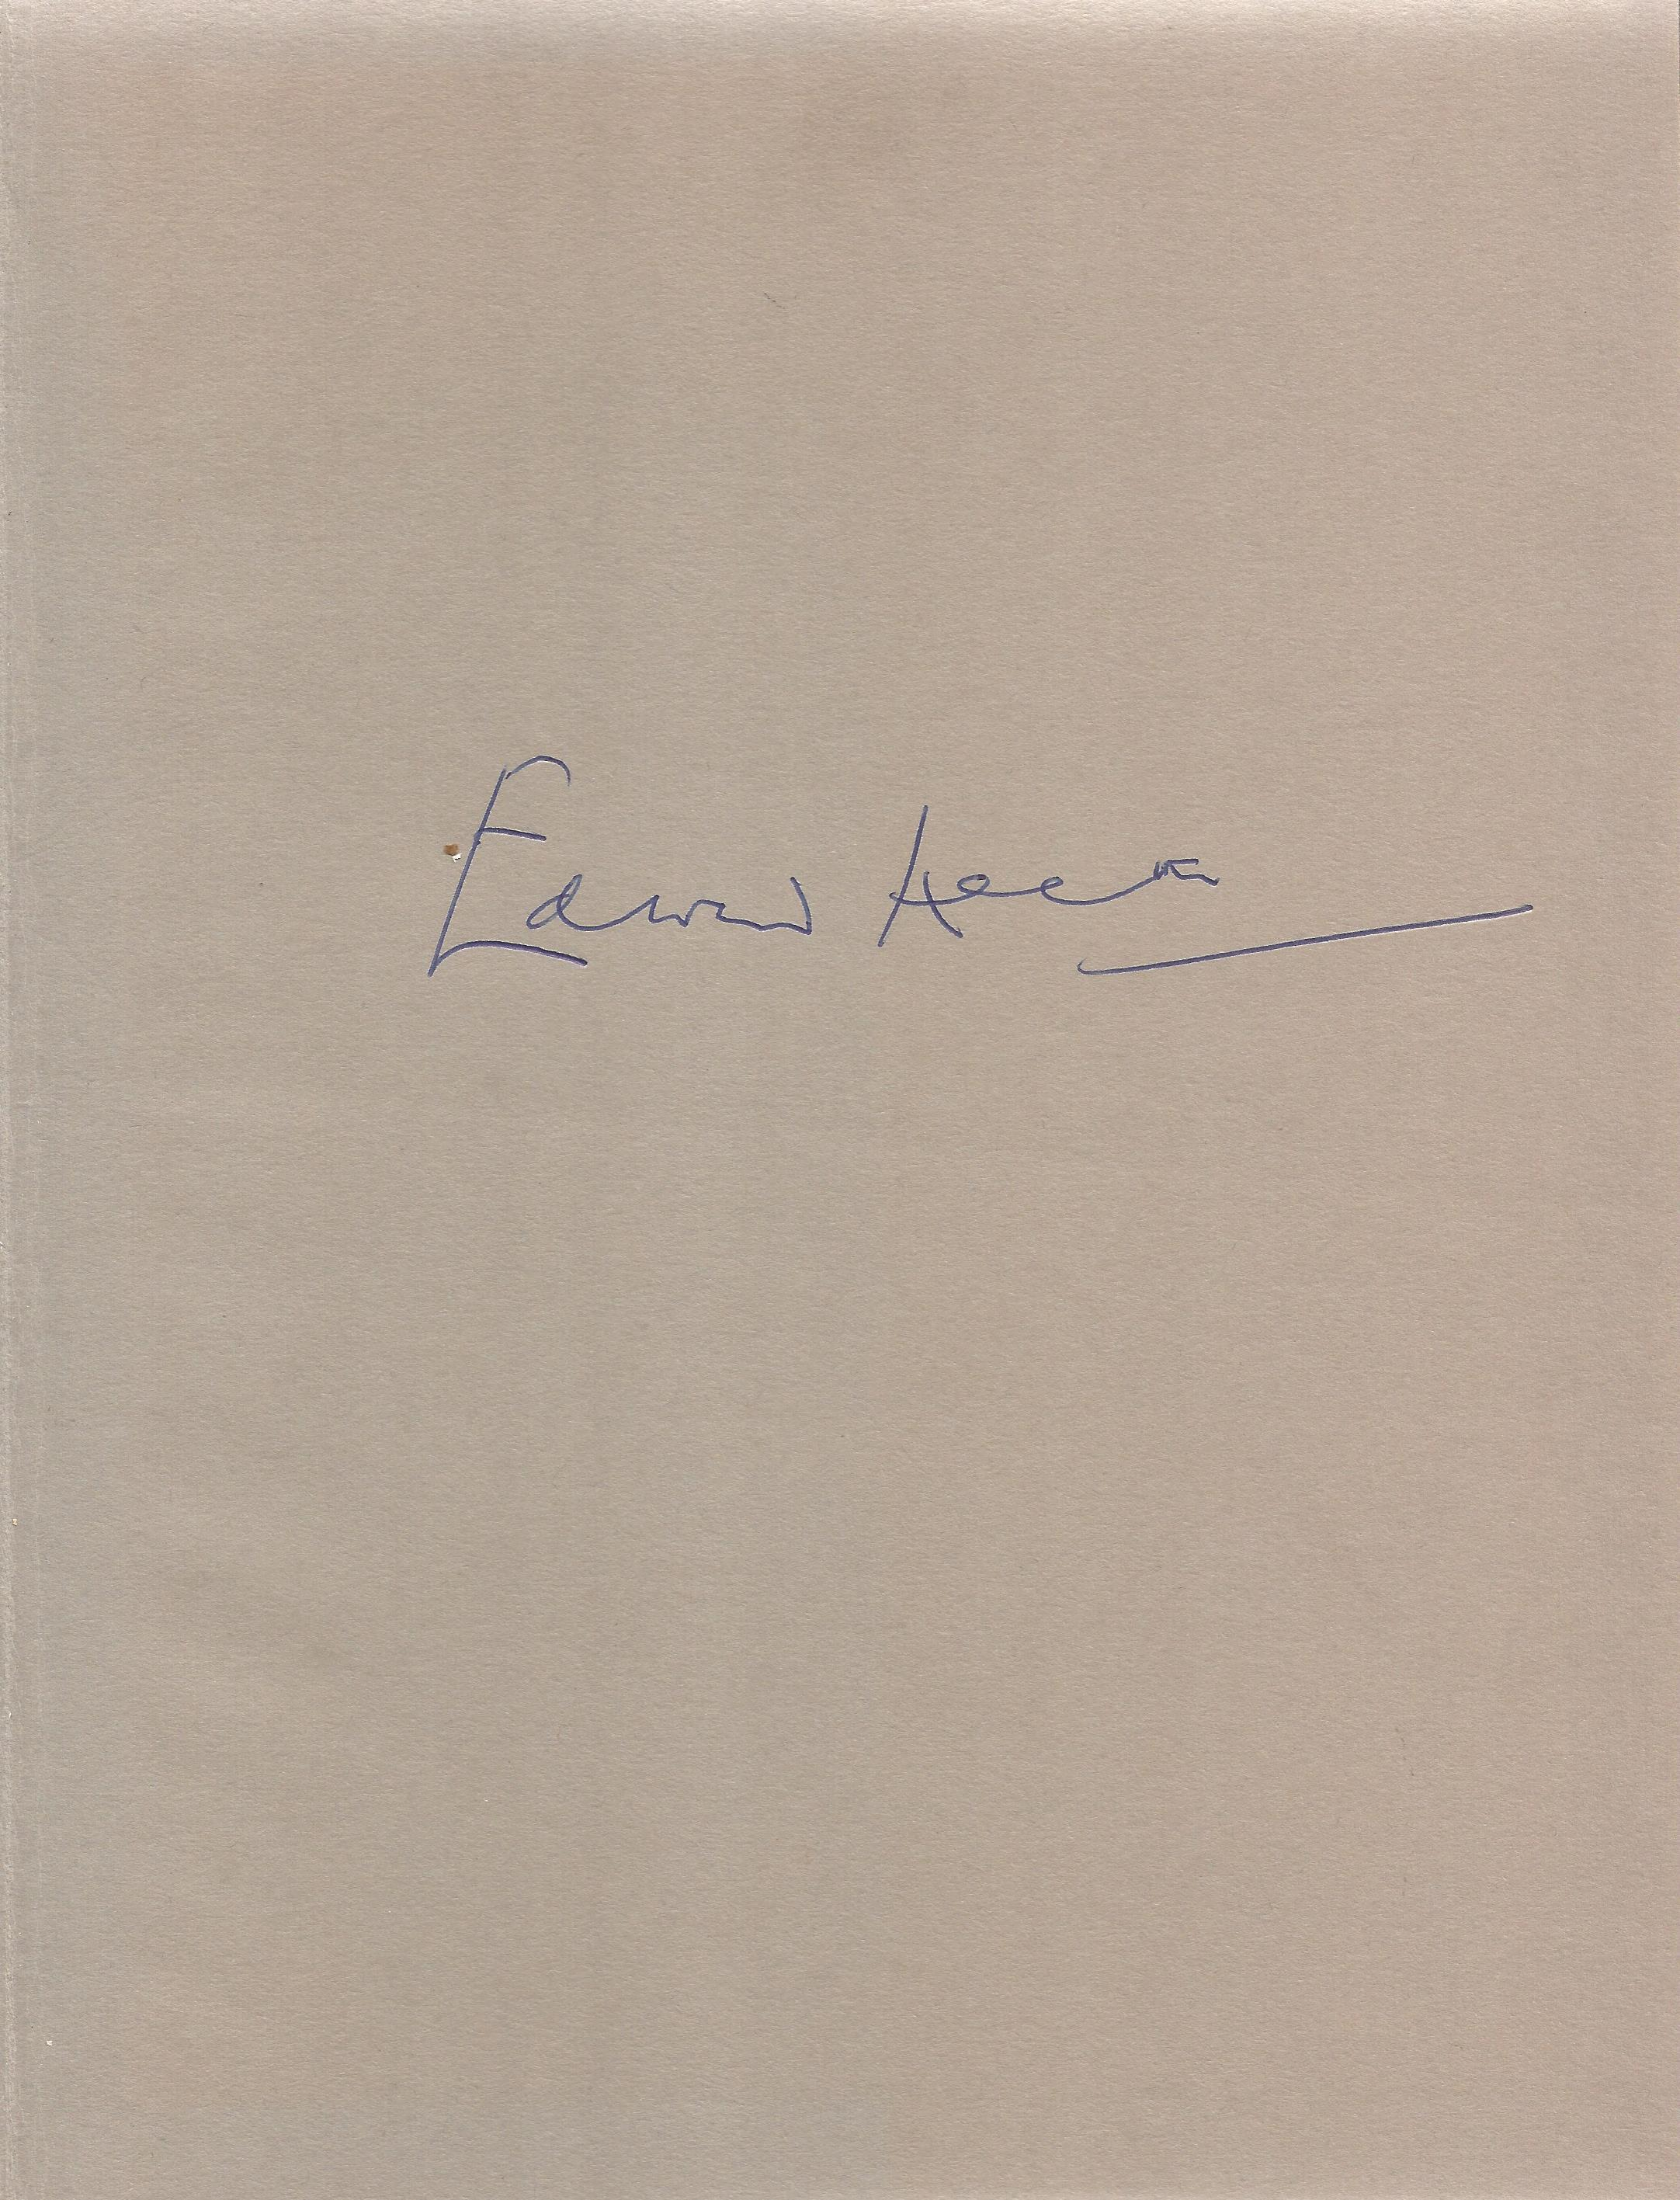 Edward Heath Signed Hardback Book Music A Joy for Life First Edition 1976 published by Sidgwick & - Image 4 of 4